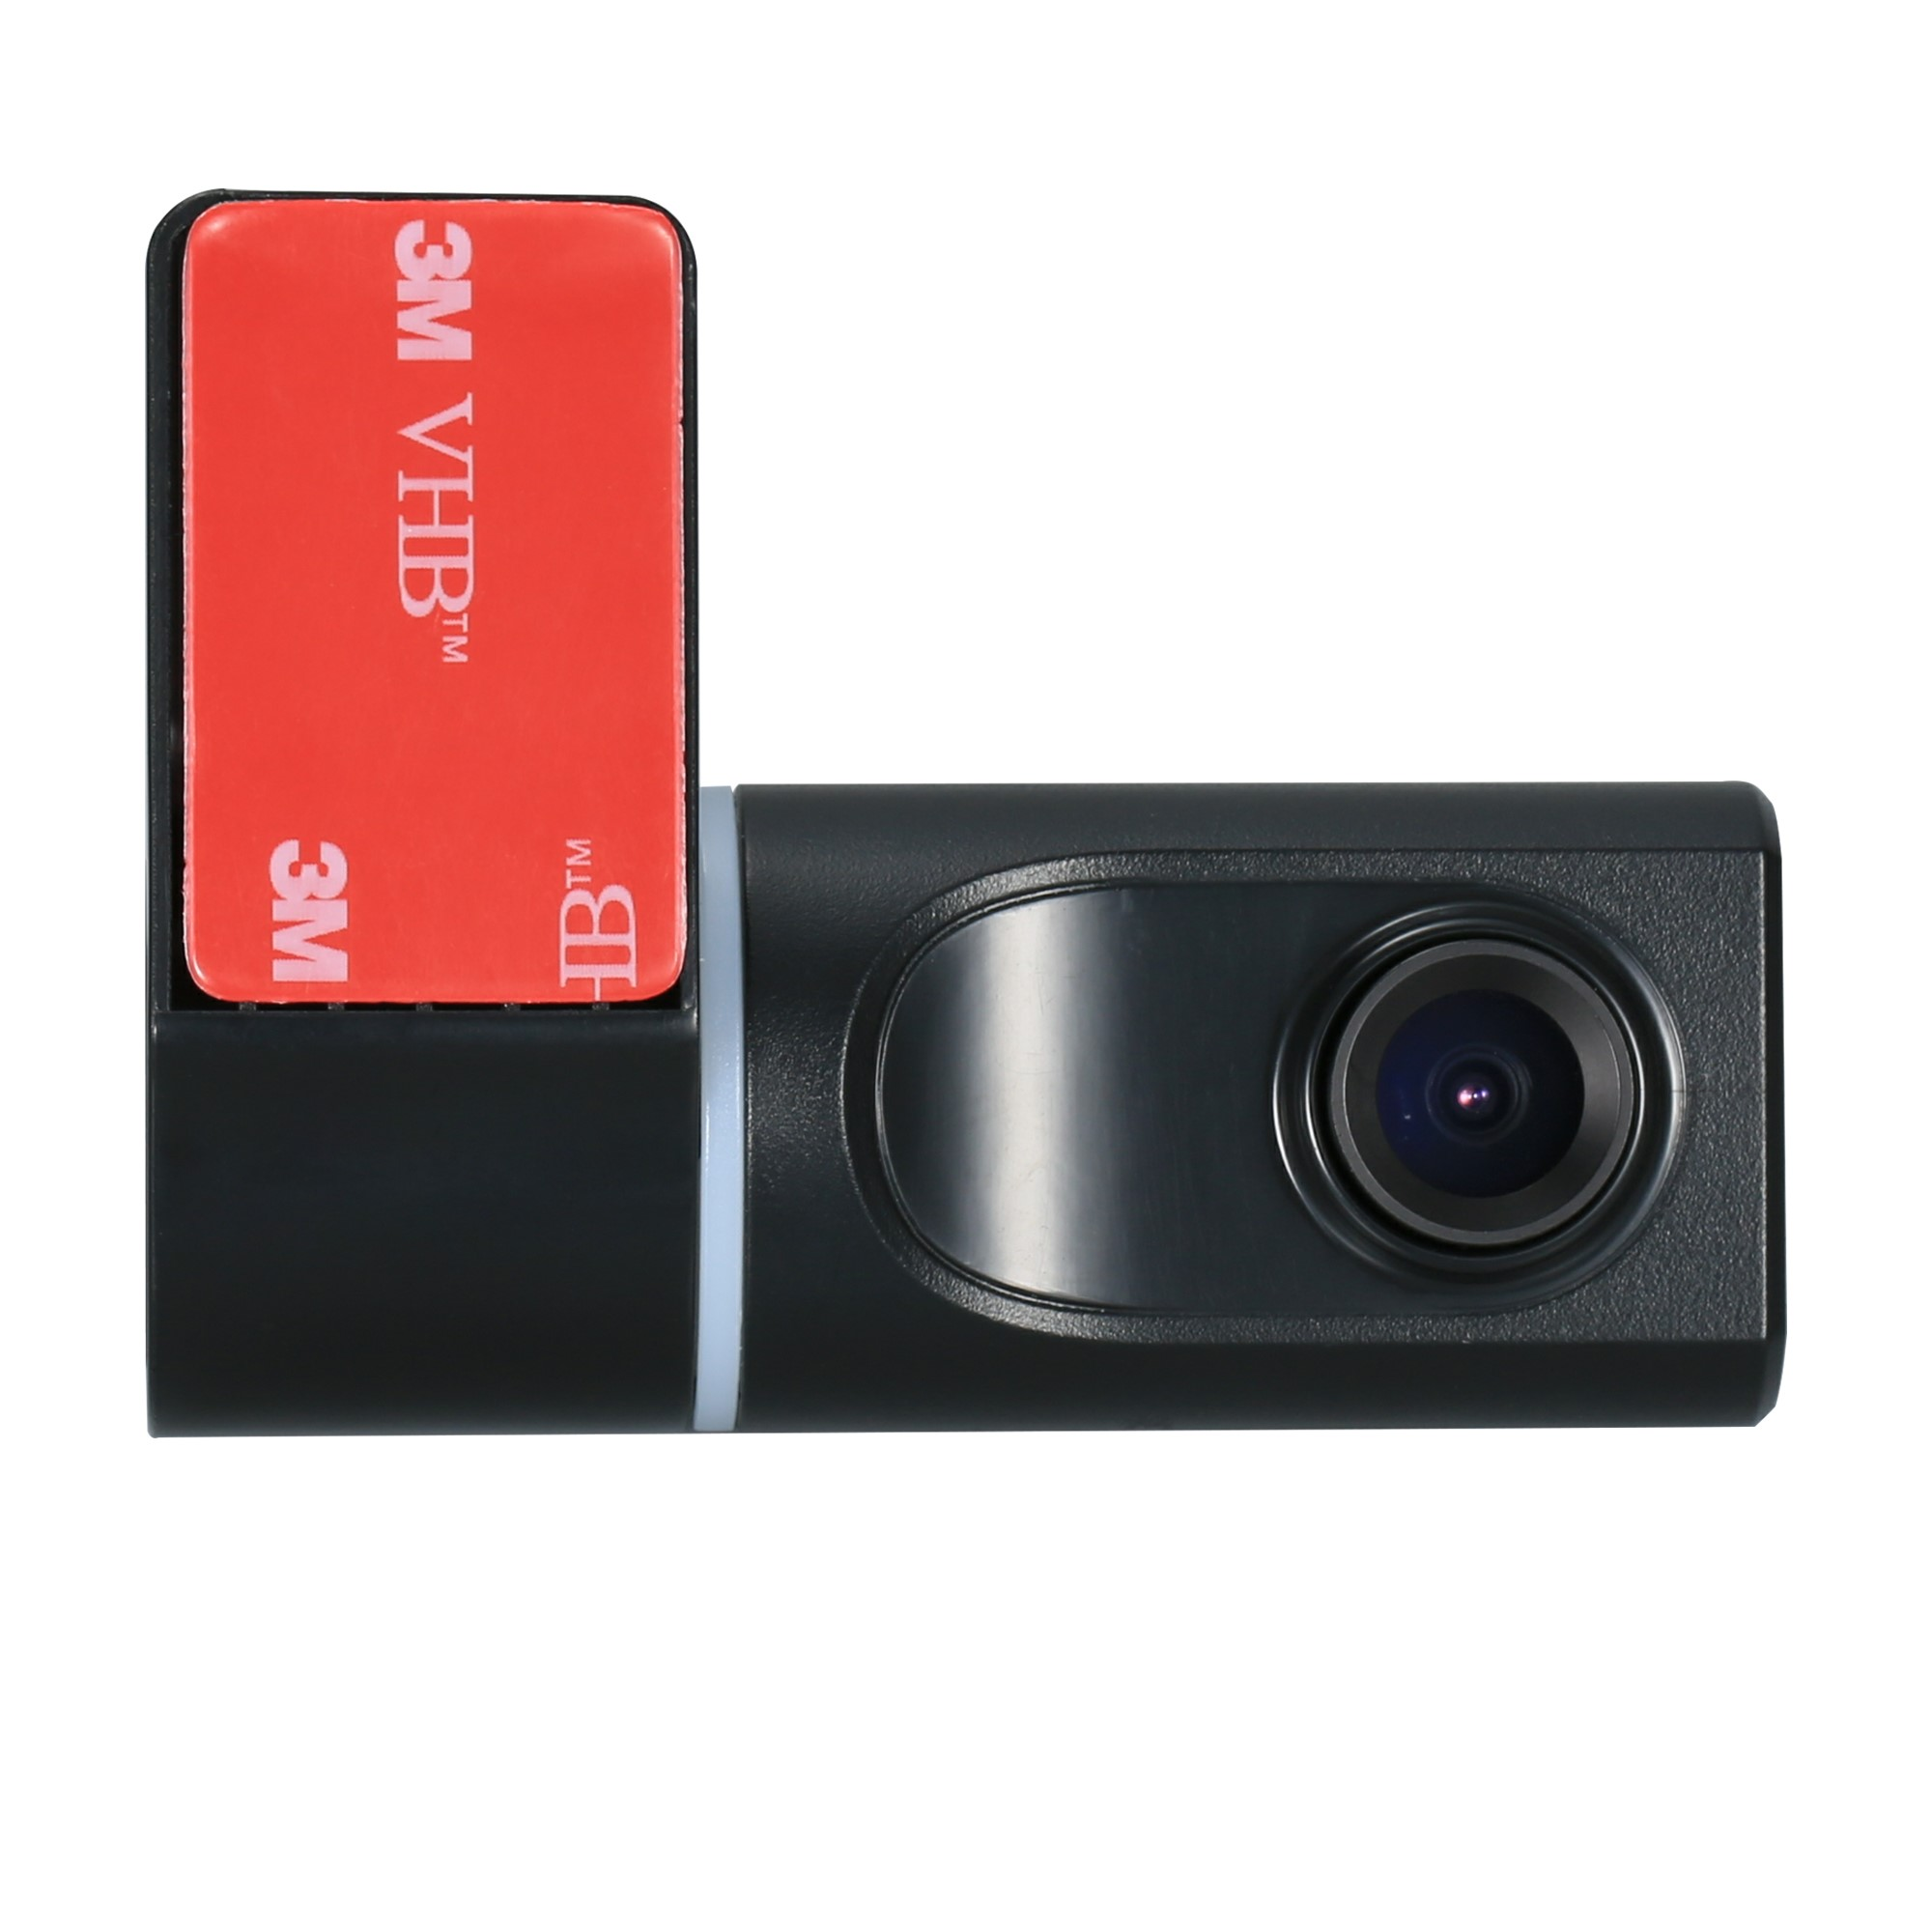 Seicane 140 Degree Wide Angle 720P USB HD DVR USB Camera Recording video Supporting Android Car Radio DVD image